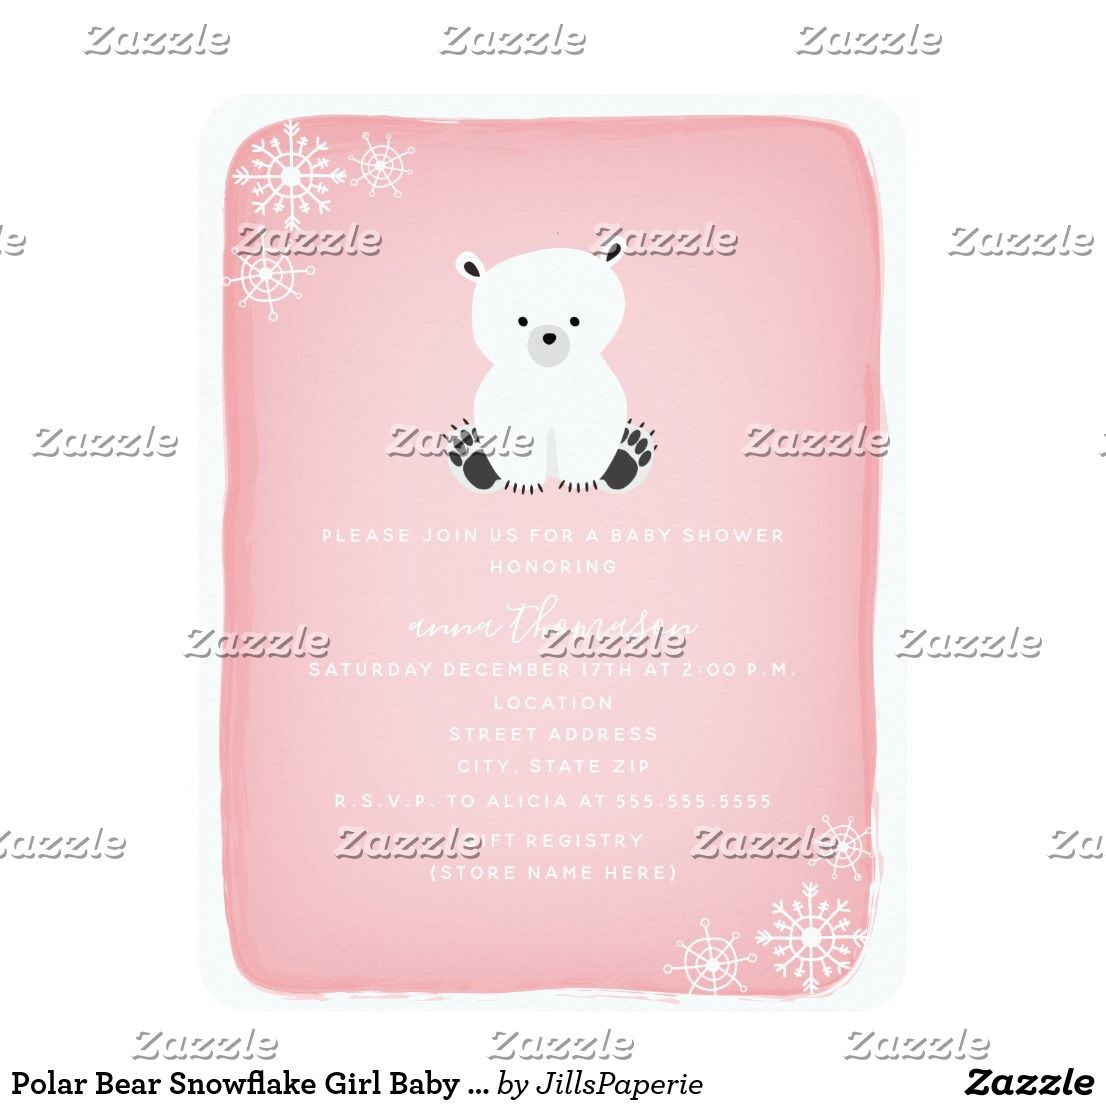 Books For Baby Insert Card 3-PIECE-SUITE Girl Winter Snowflake Diaper Raffle Pink Polar Bear Baby Shower Invitation Package WINT10